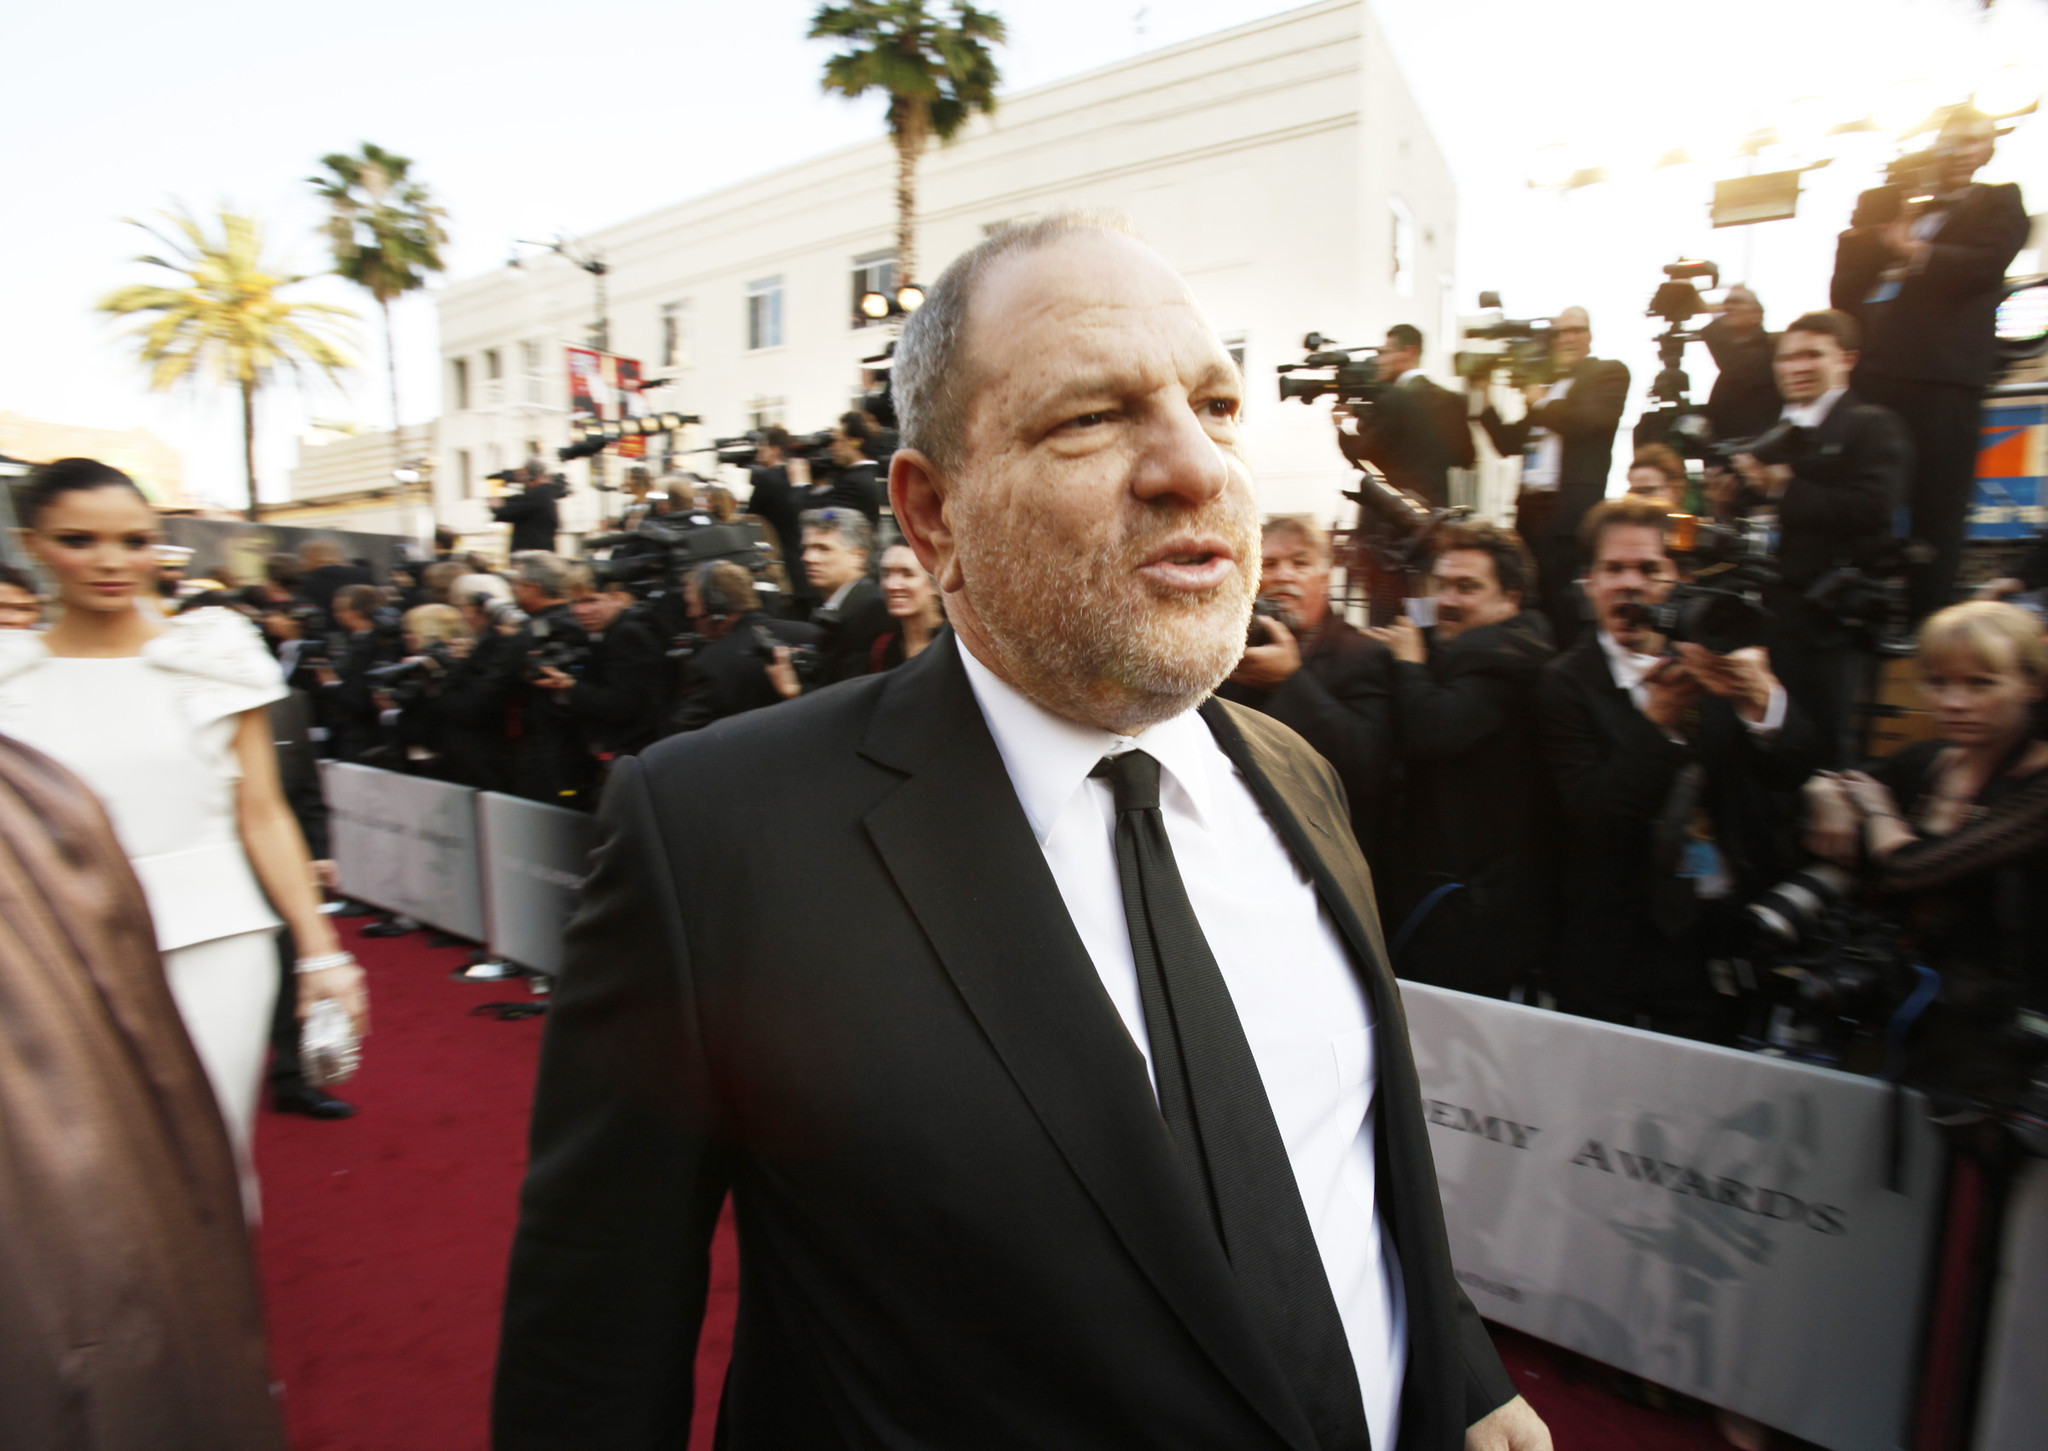 Weinstein Co. is facing a crisis amid sexual harassment allegations against Harvey Weinstein. (Al Seib / Los Angeles Times)